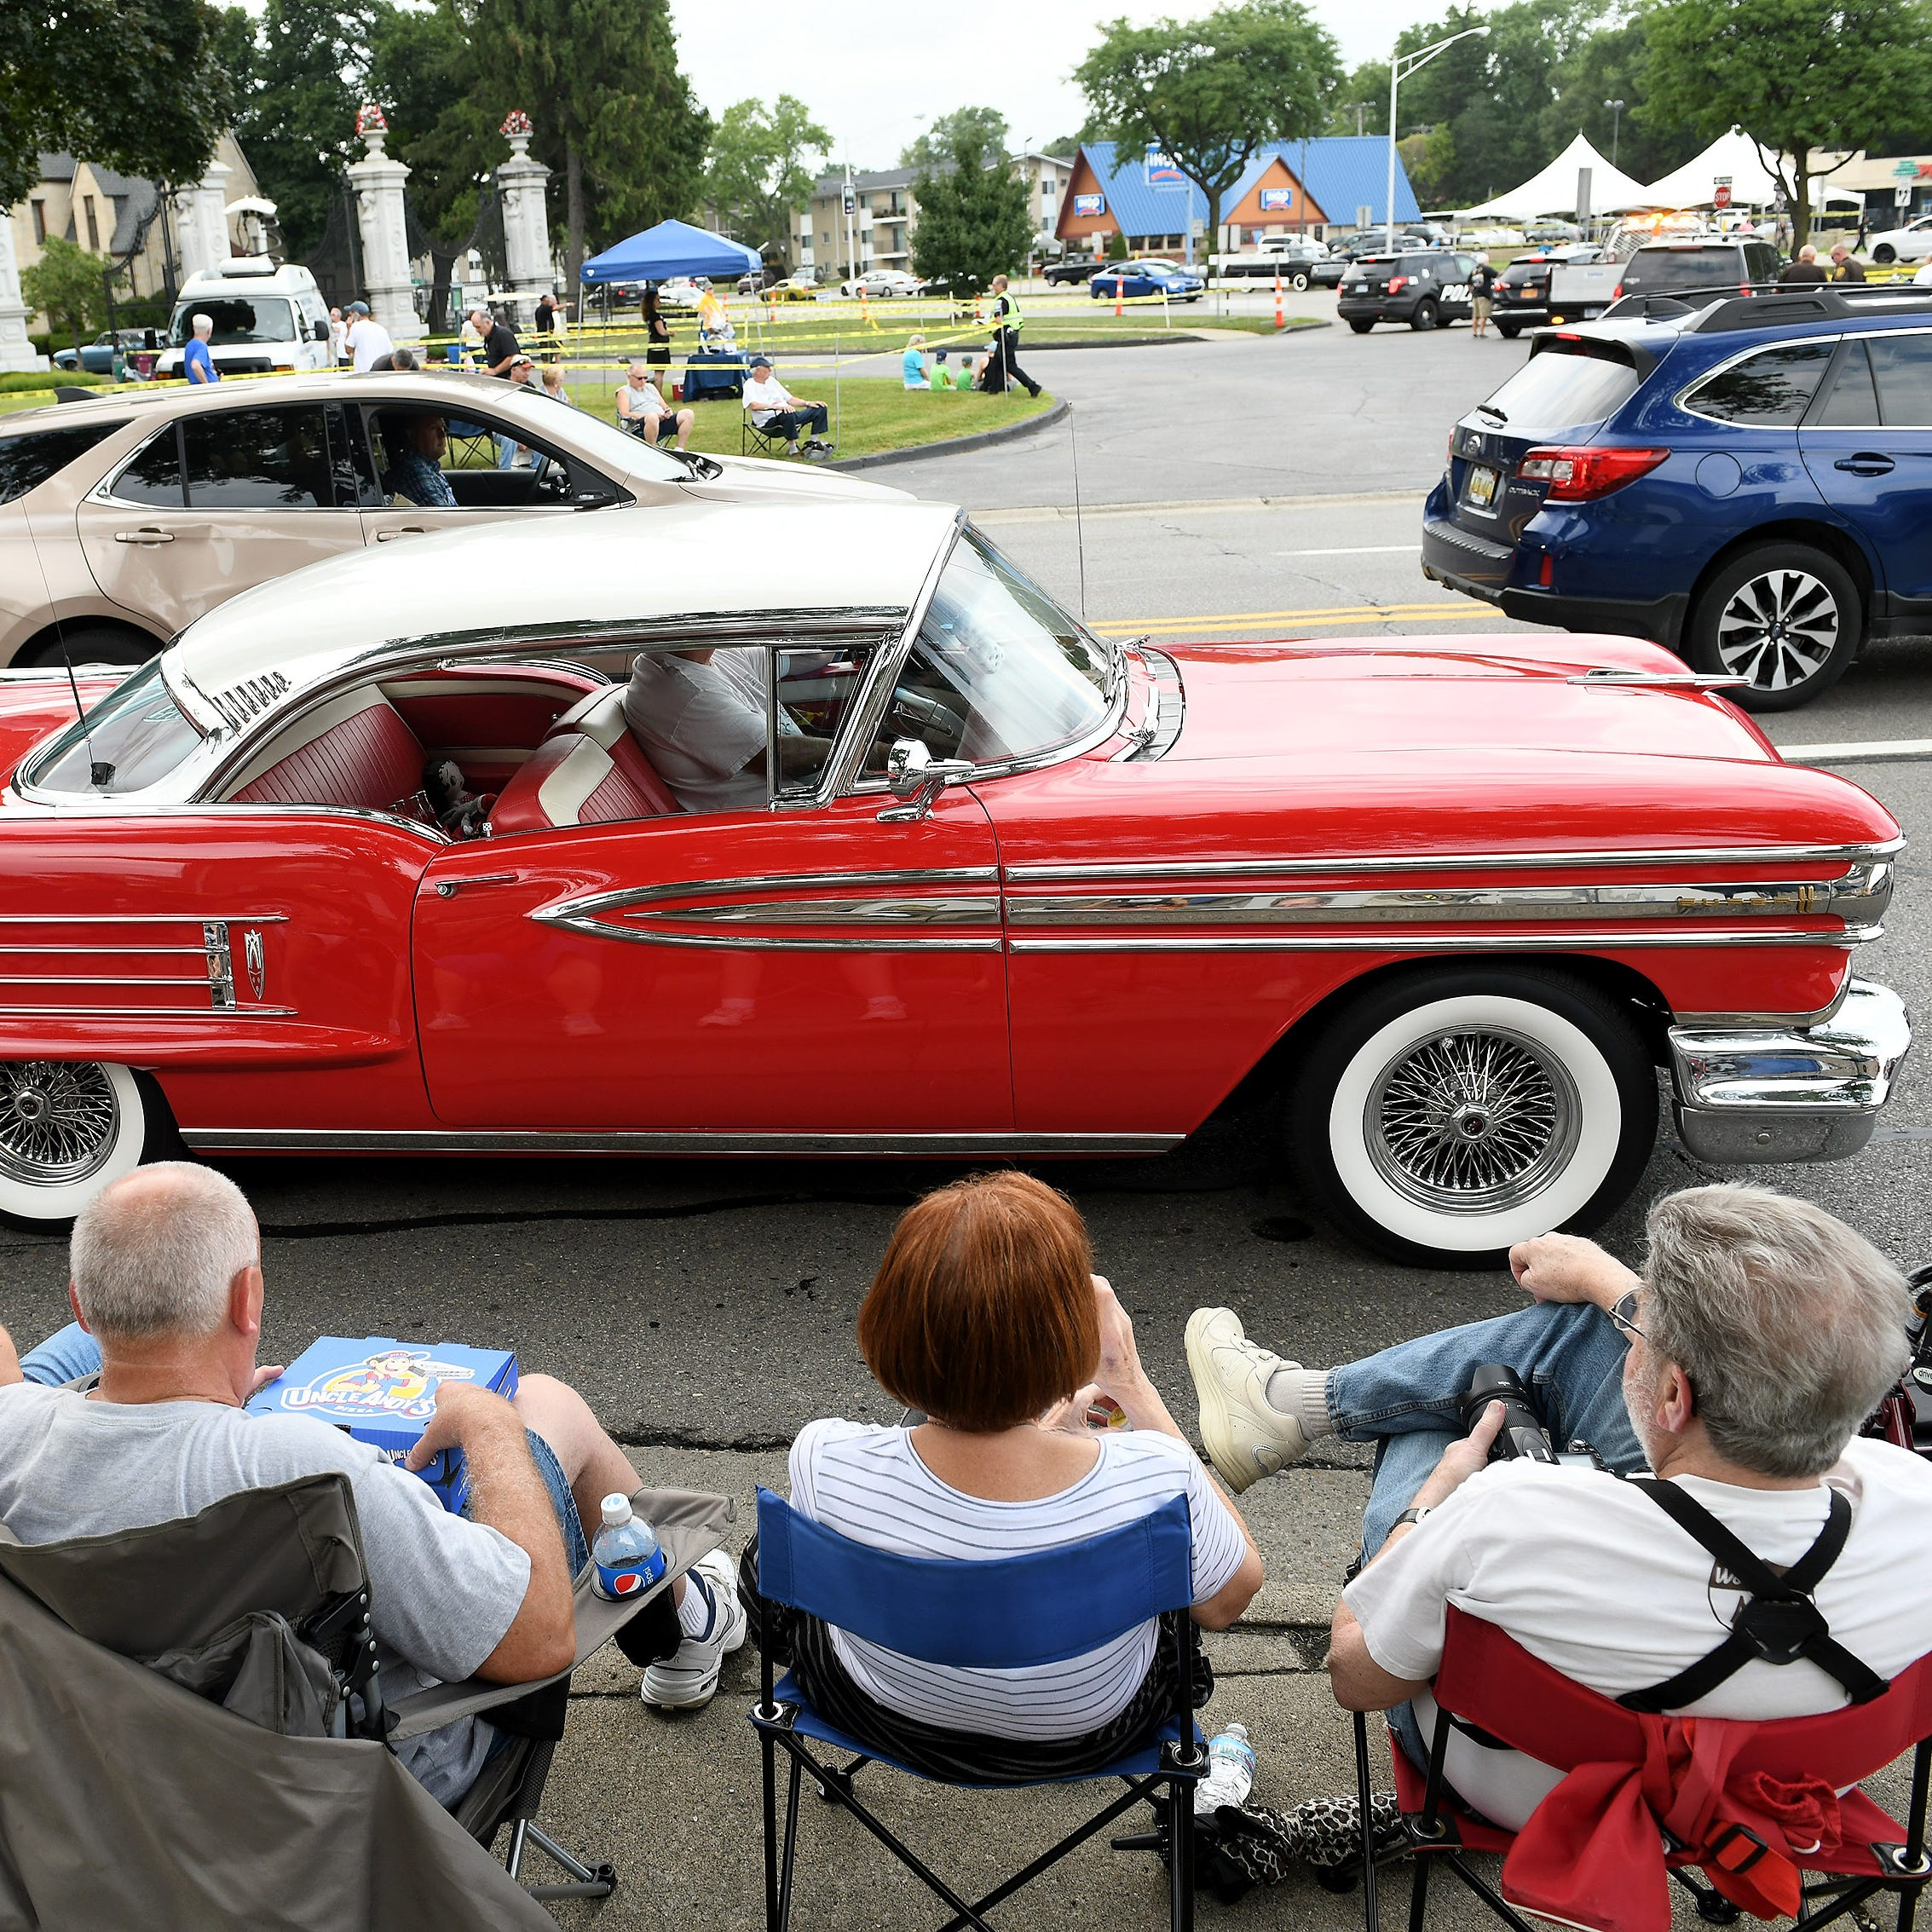 Interest in Woodward Dream Cruise driven by nostalgia, history, love of cars